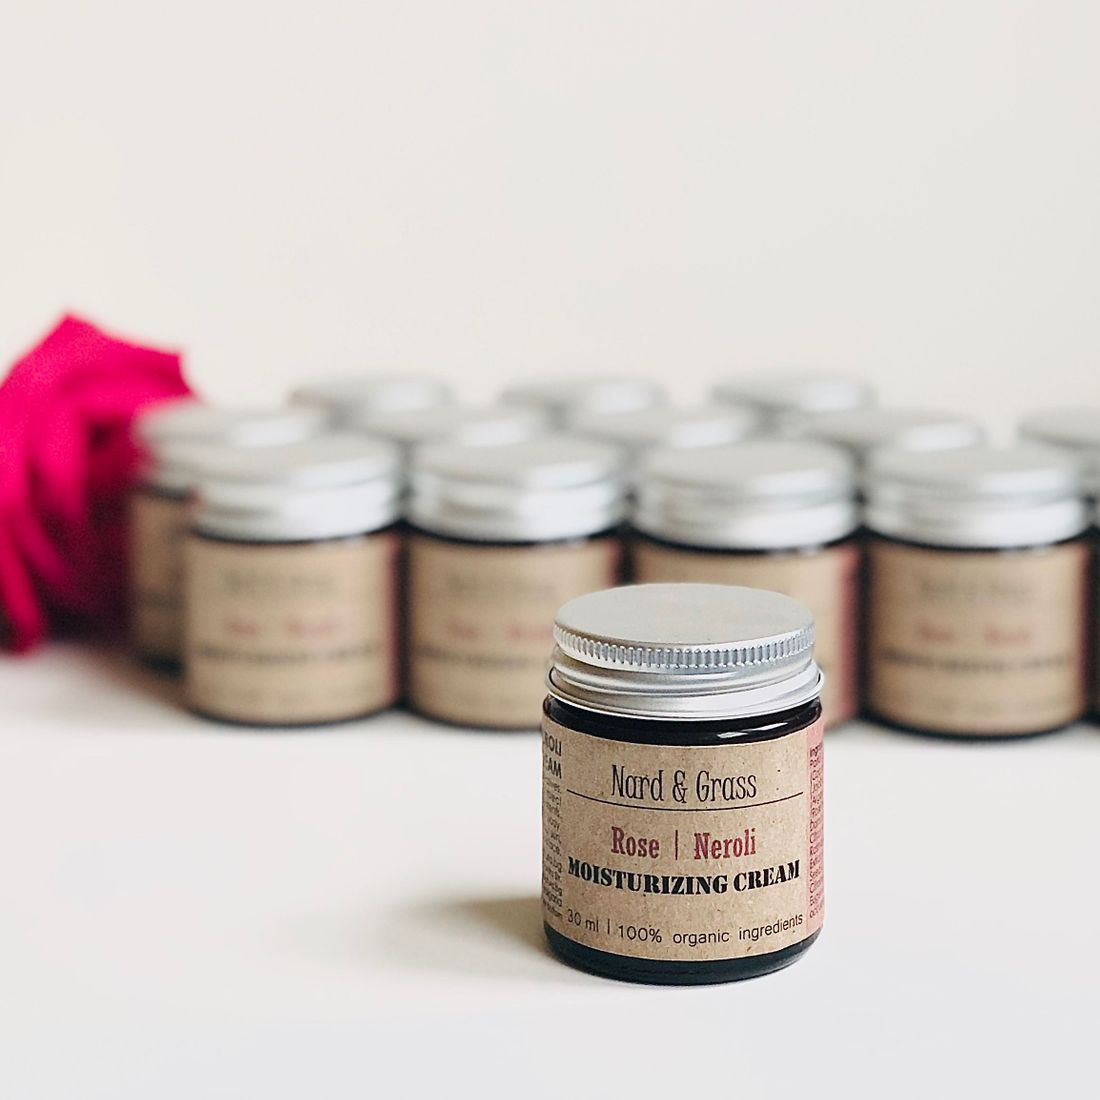 rose face balm, clean rose-infused beauty, bulgarian rose oil, organic ingredients, natural skincare, rosepost box